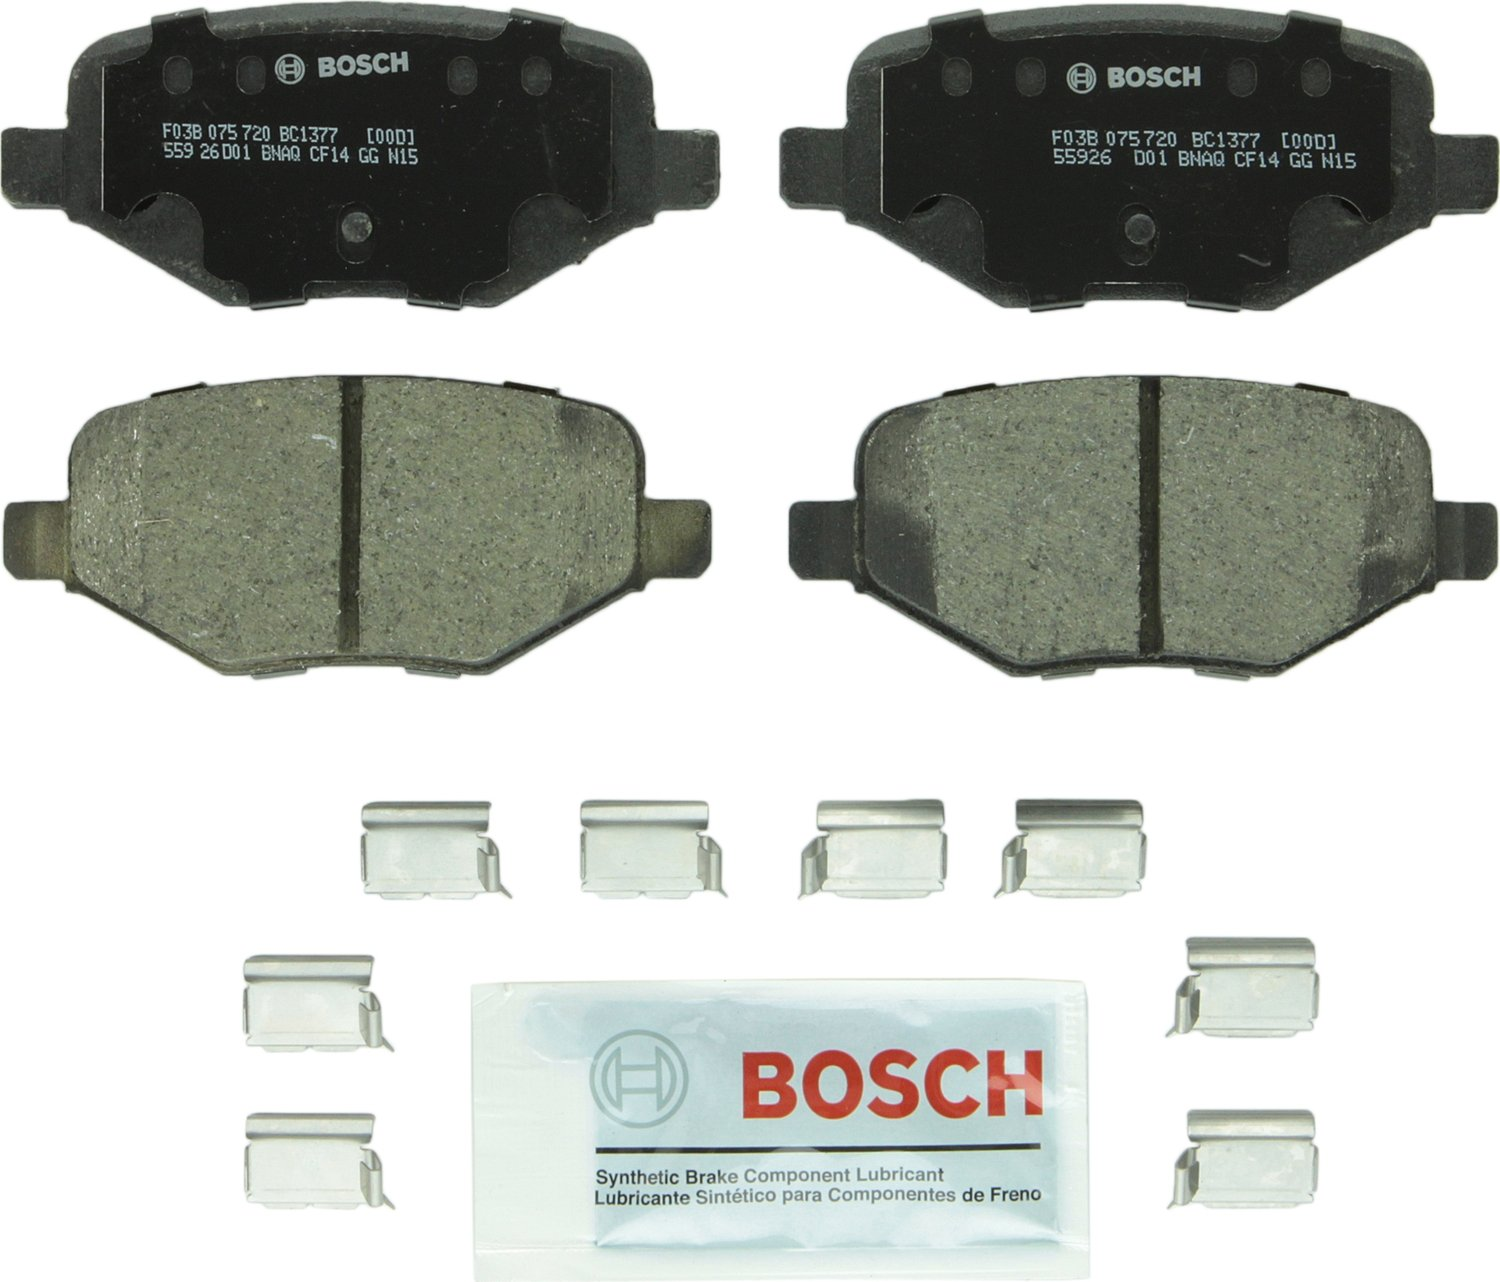 FRONT Taurus and Lincoln MKS Flex MKT Vehicles Bosch BE1611H Blue Disc Brake Pad Set with Hardware for Select Ford Explorer